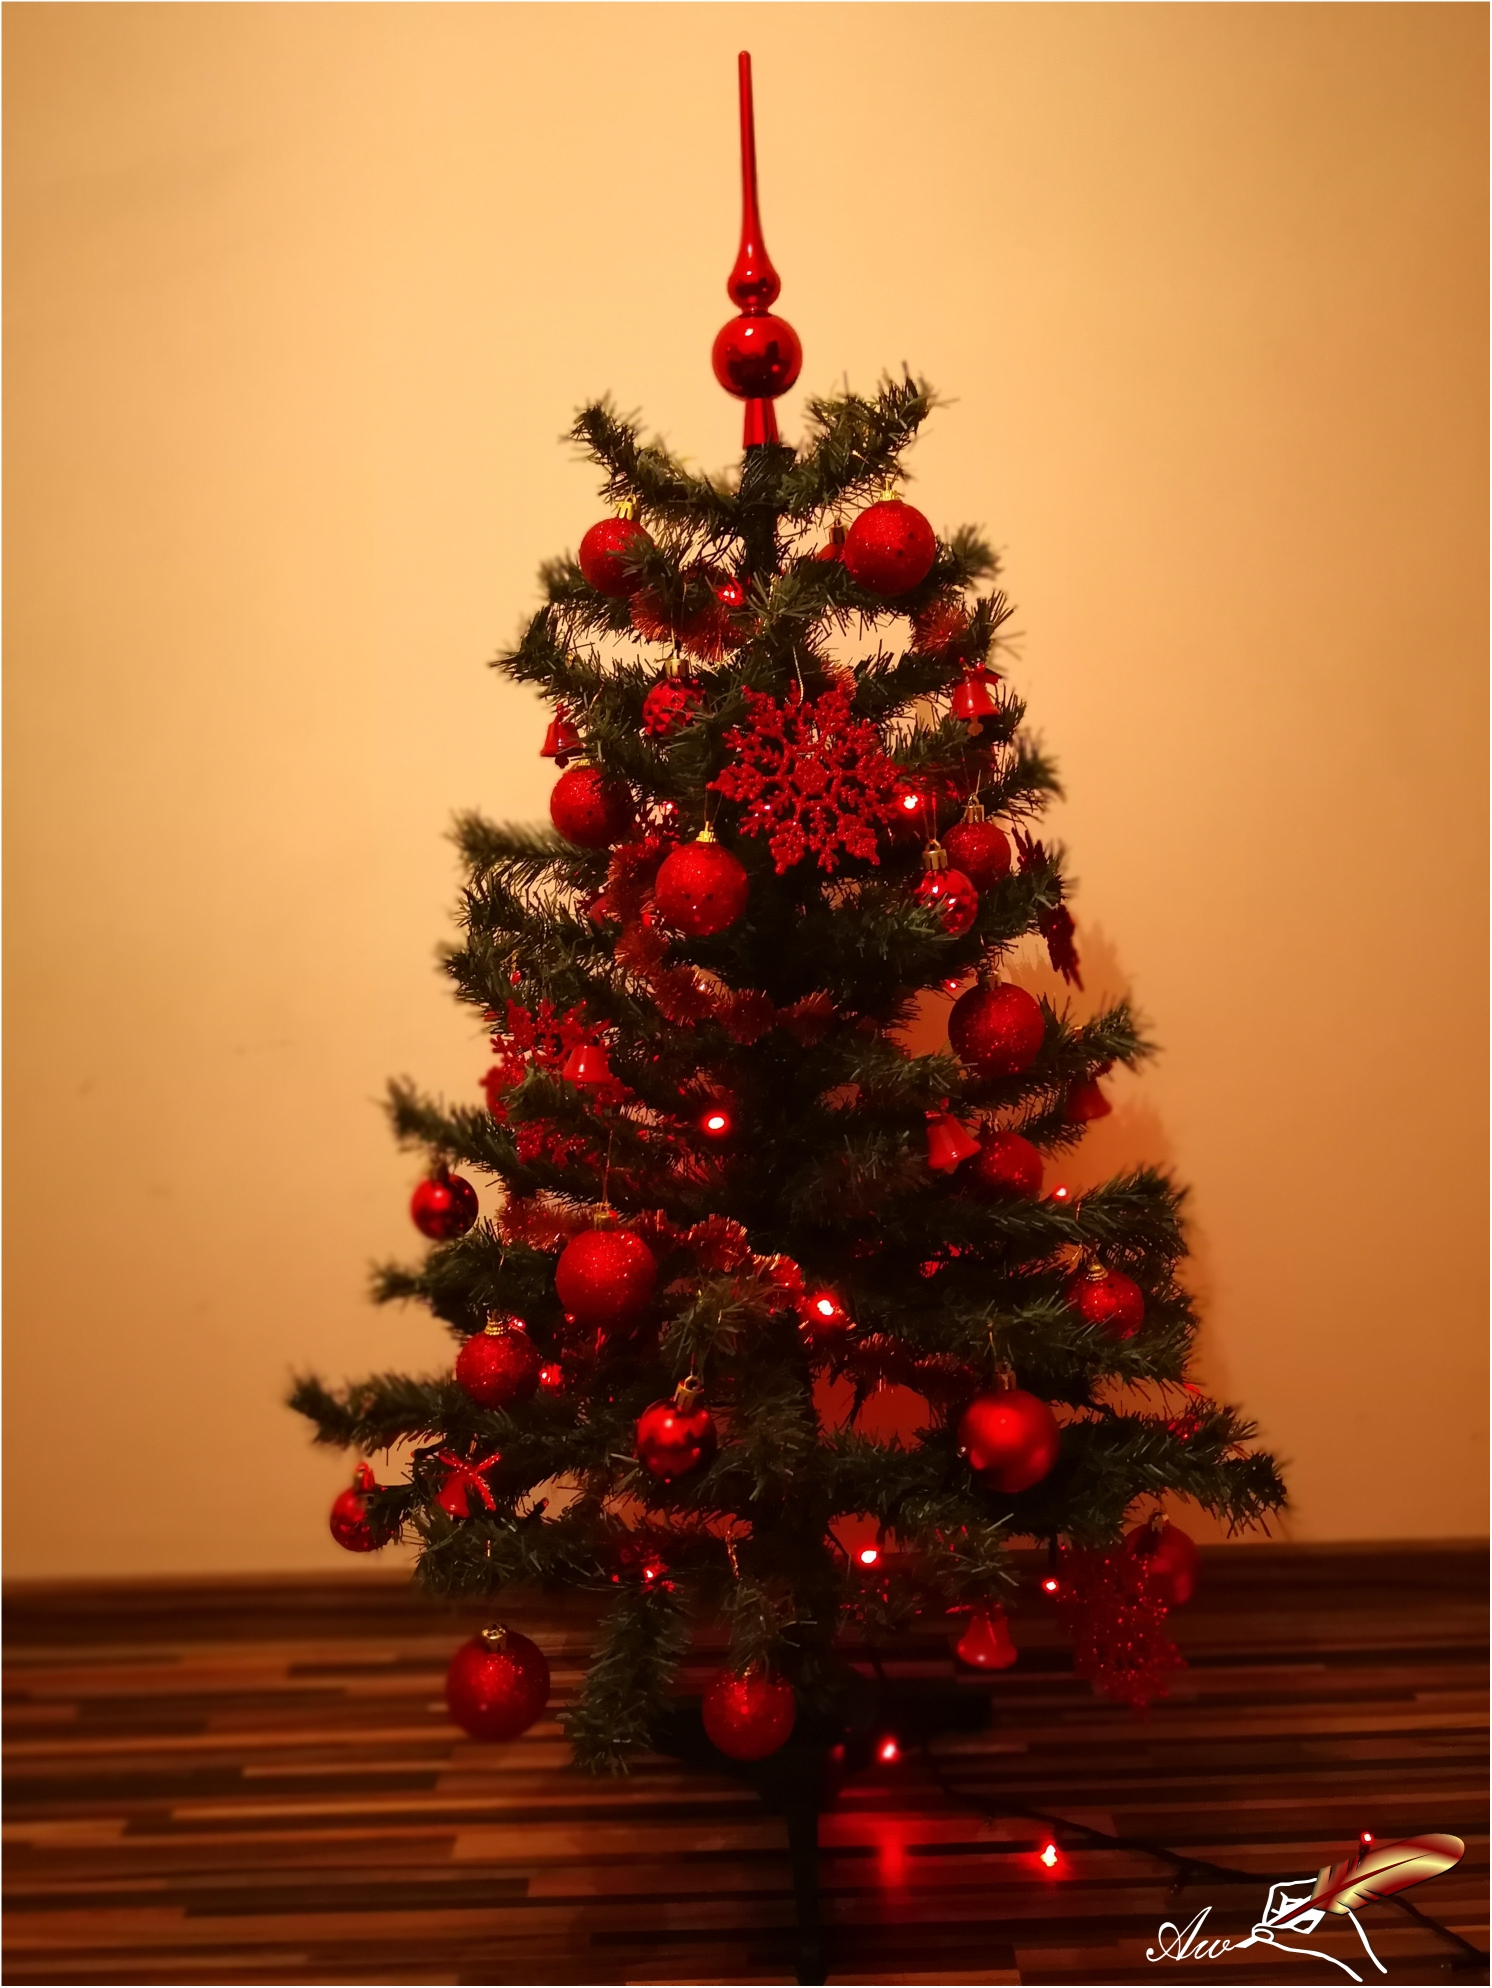 My tree is ready - by Andrada Anitei